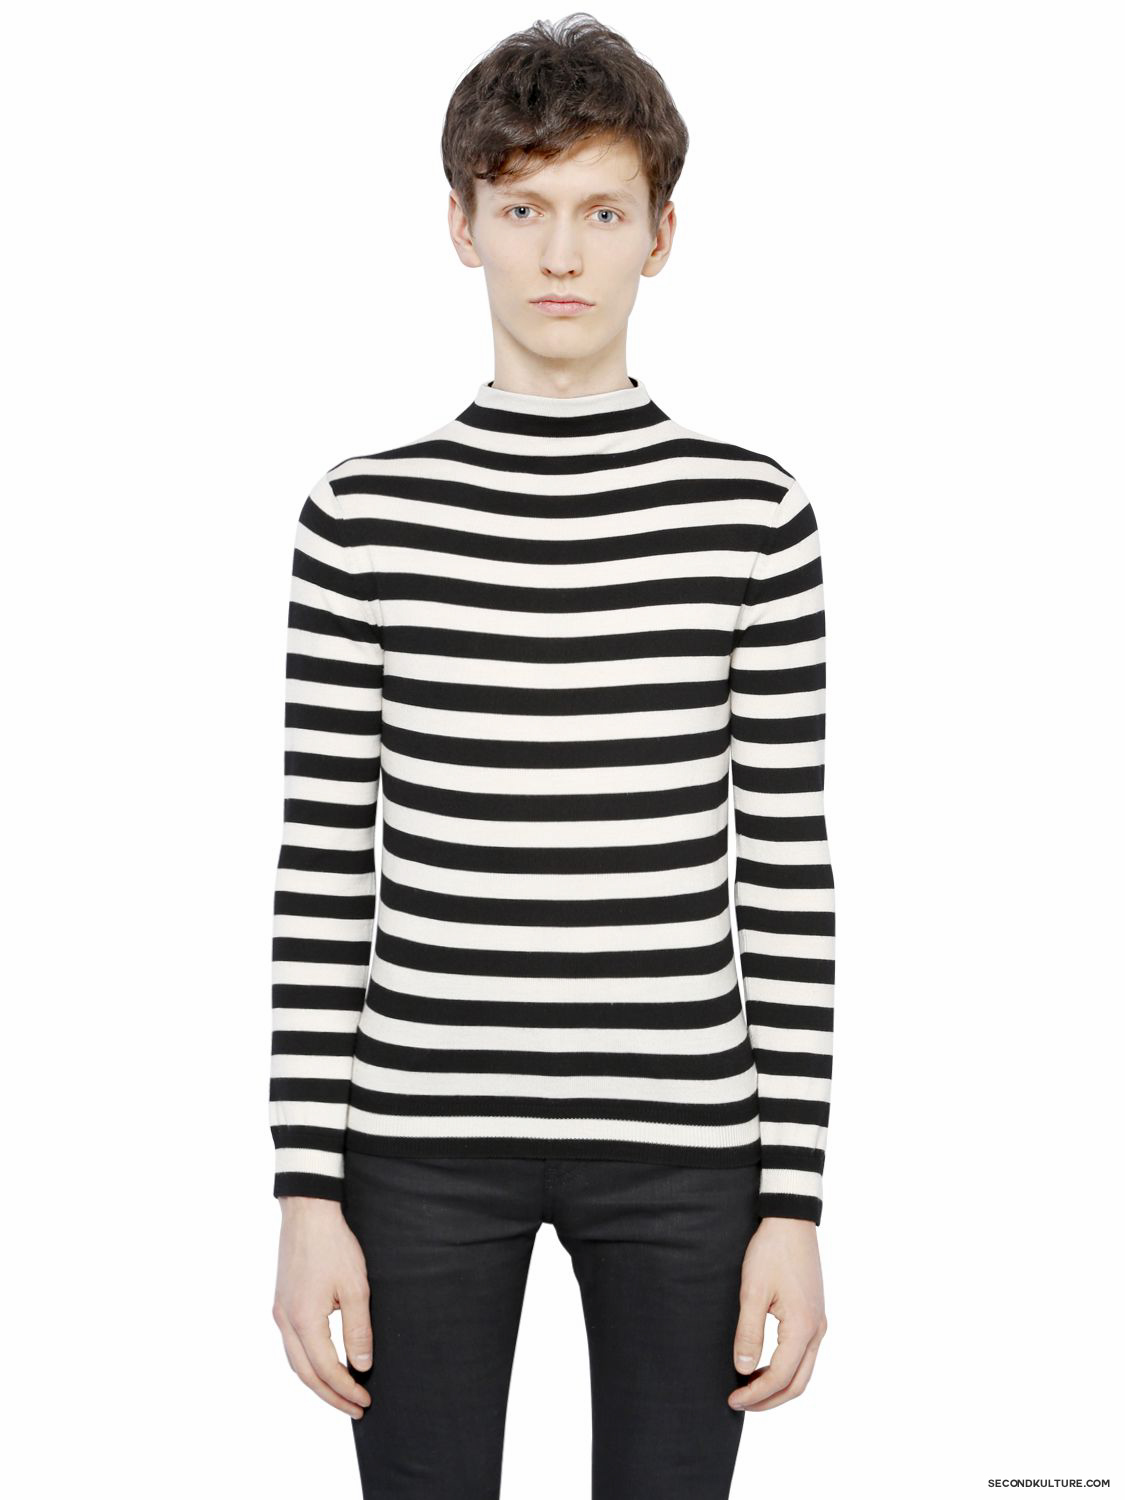 Saint-Laurent-White-and-Black-Striped-Wool-Sweater-Fall-Winter-2015-1